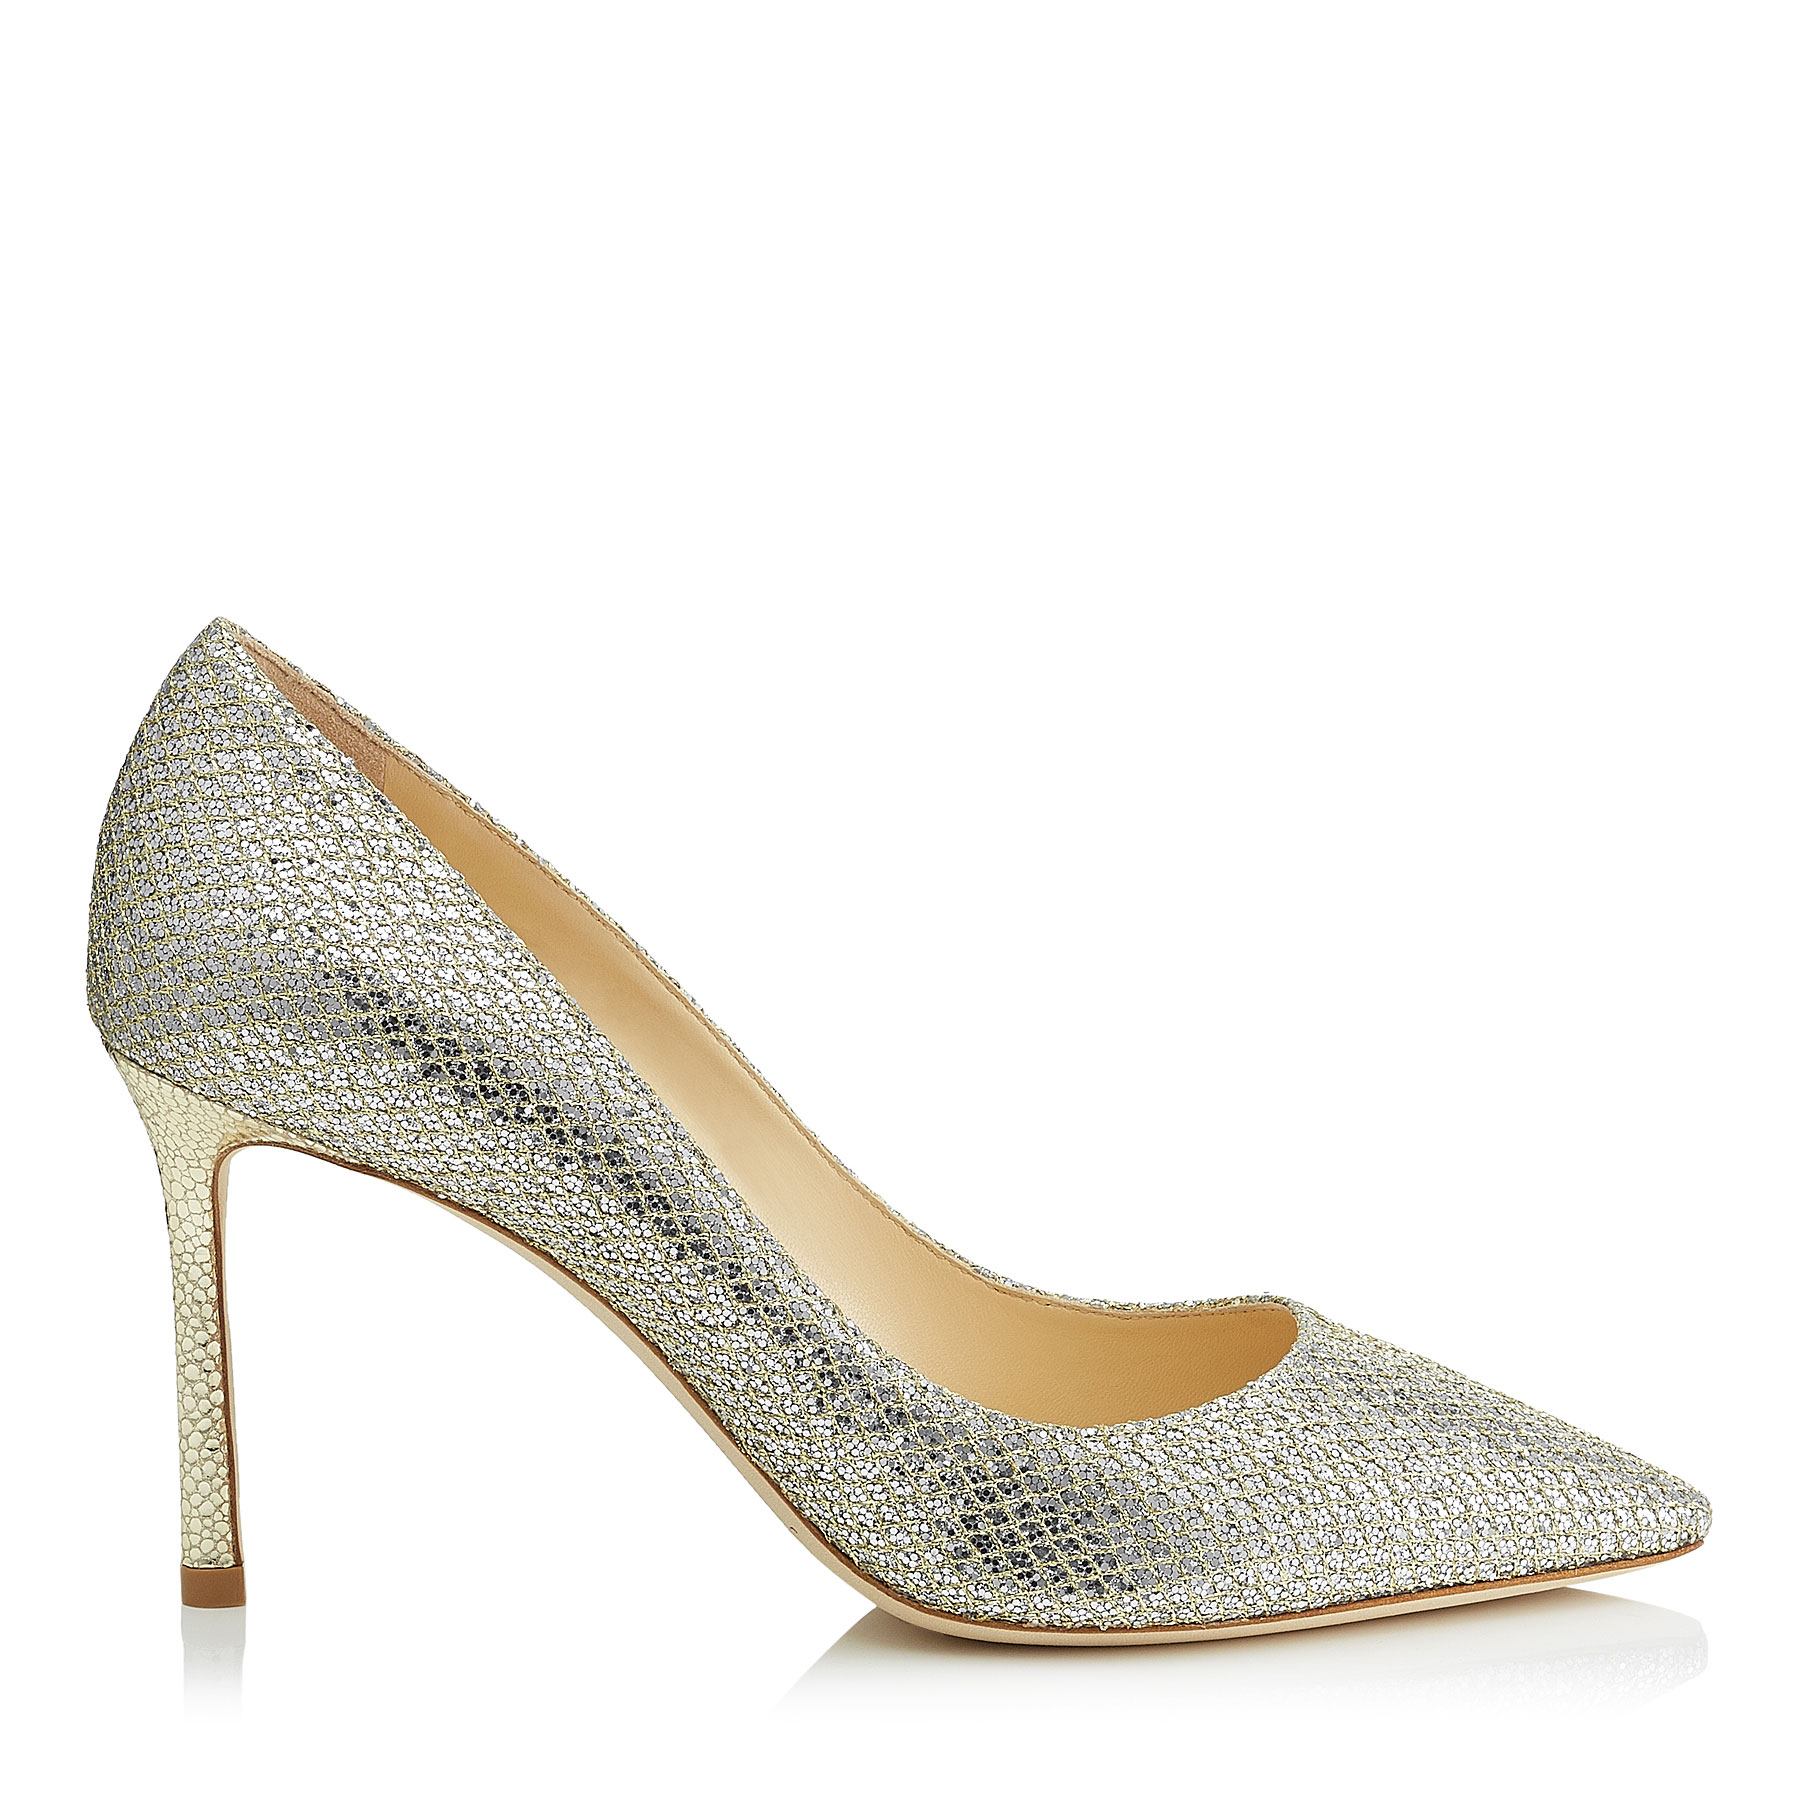 ROMY 85 Champagne Glitter Fabric Pointy Toe Pumps by Jimmy Choo